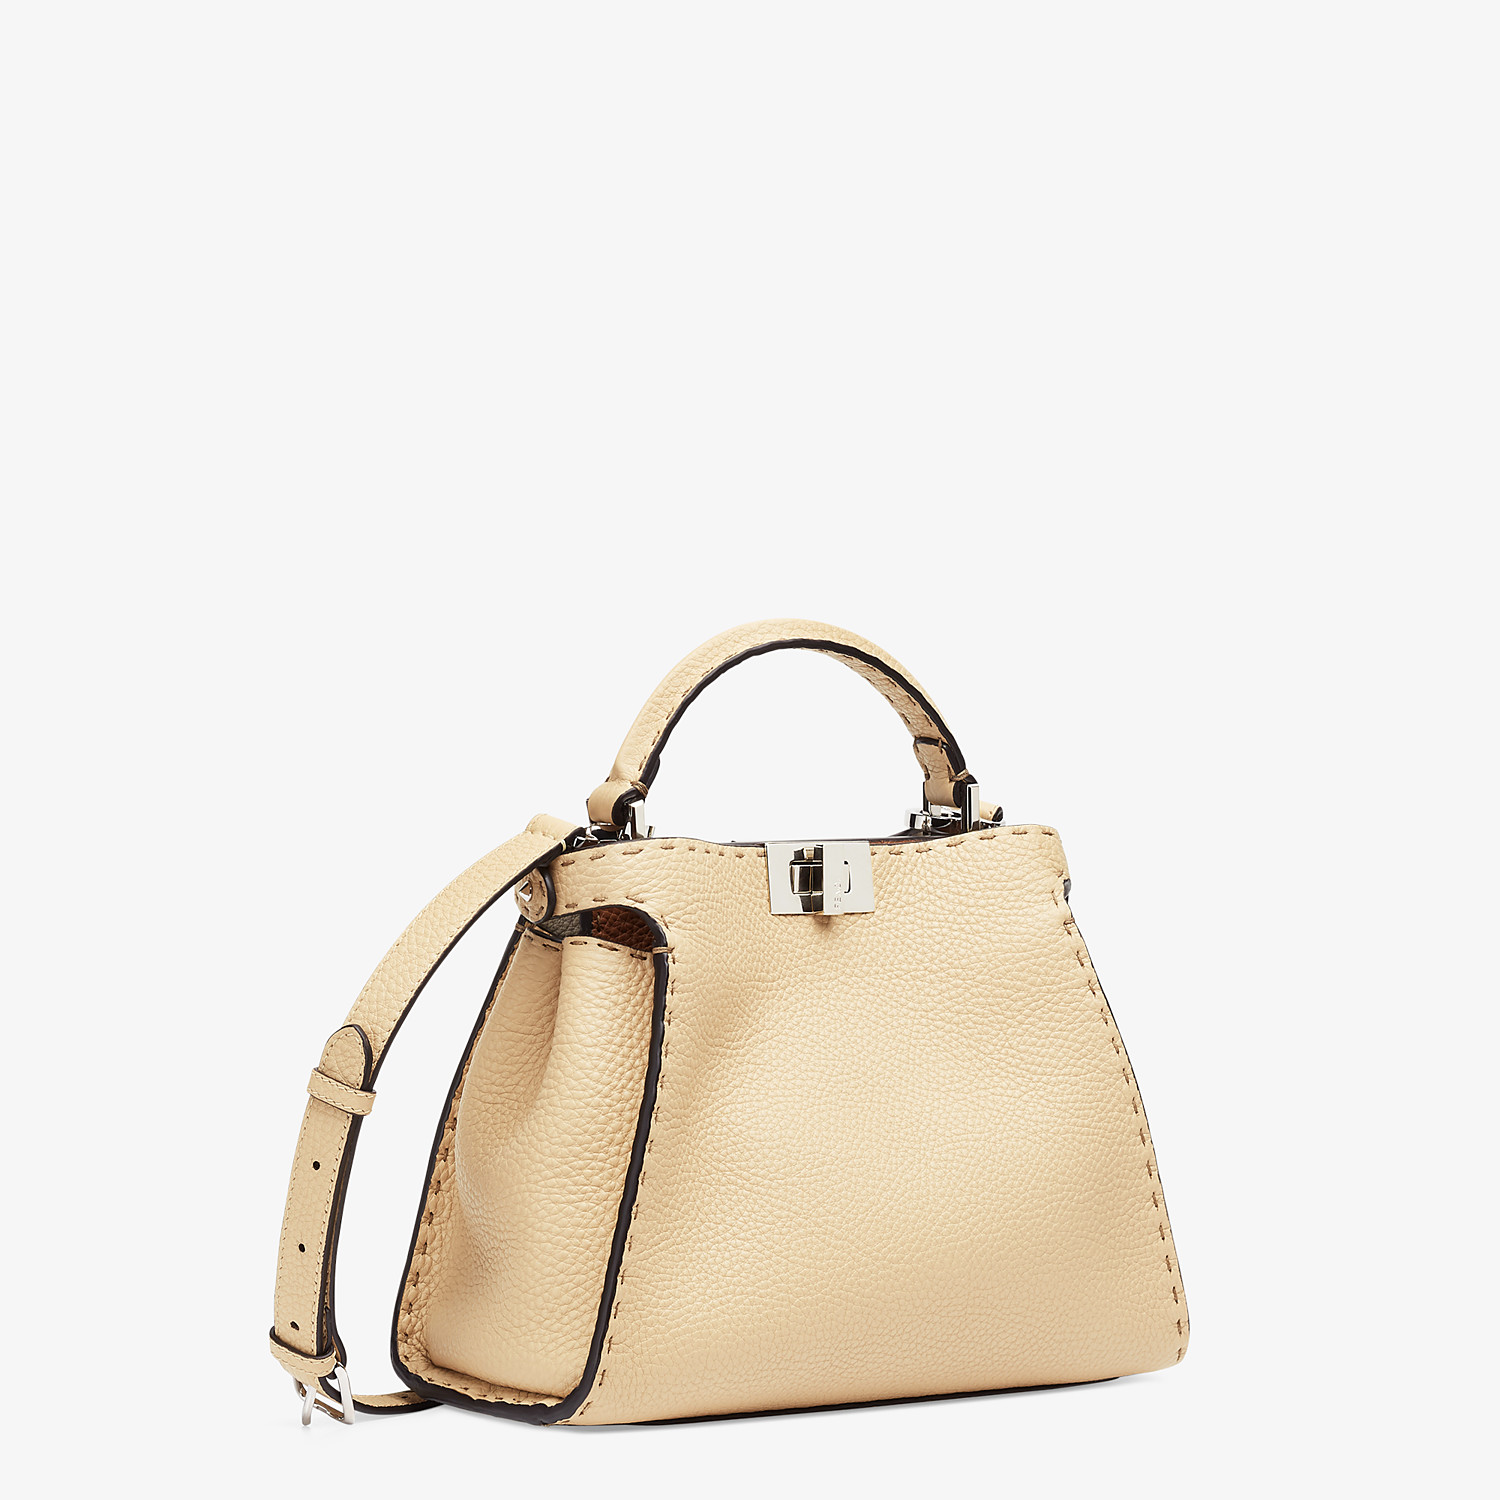 FENDI PEEKABOO ICONIC ESSENTIALLY - Beige Cuoio Romano leather bag - view 3 detail